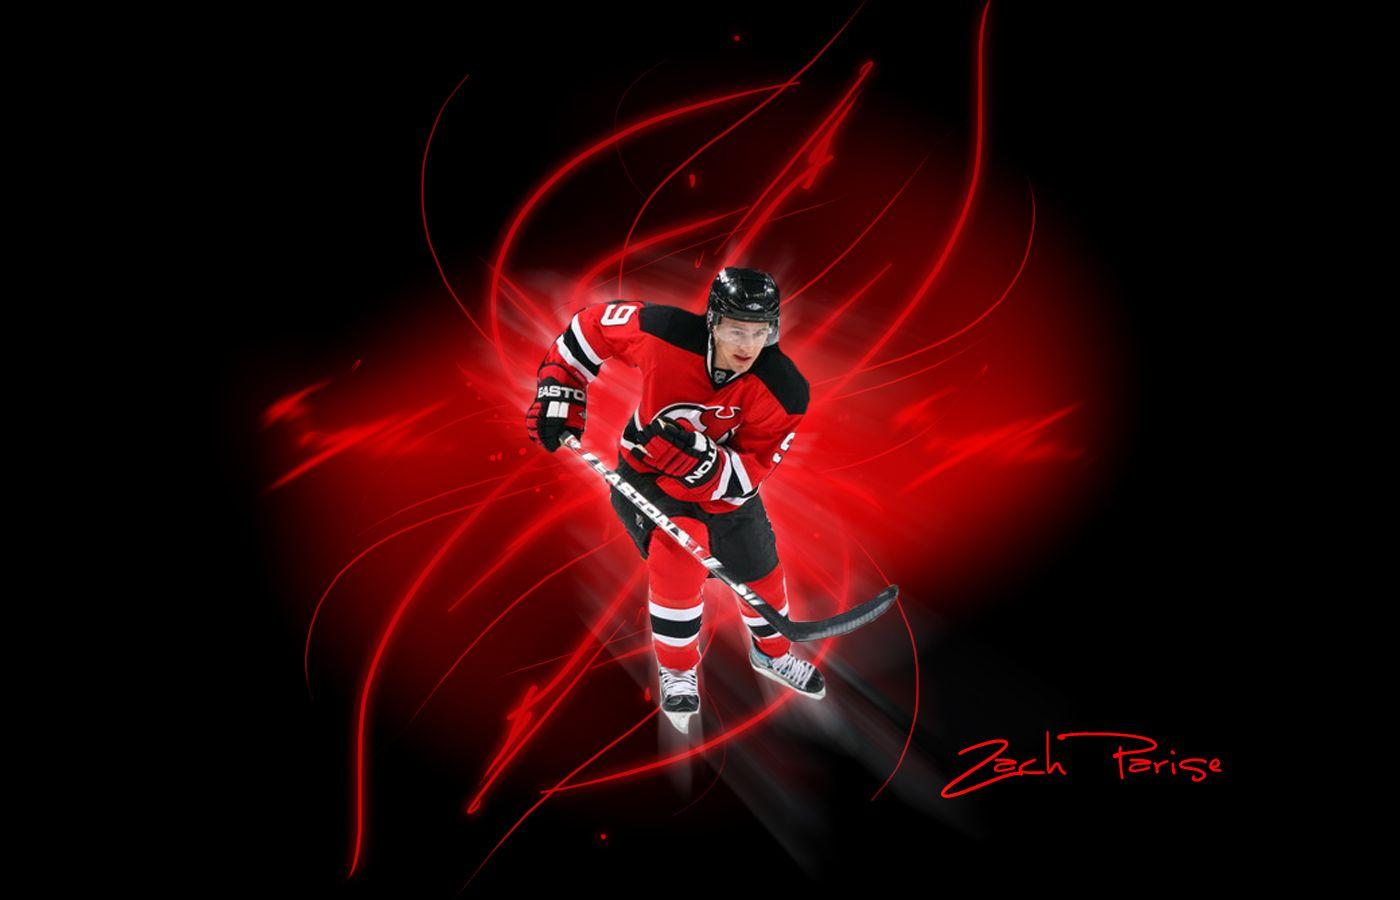 The NHL image Zach Parise Wallpapers HD wallpapers and backgrounds